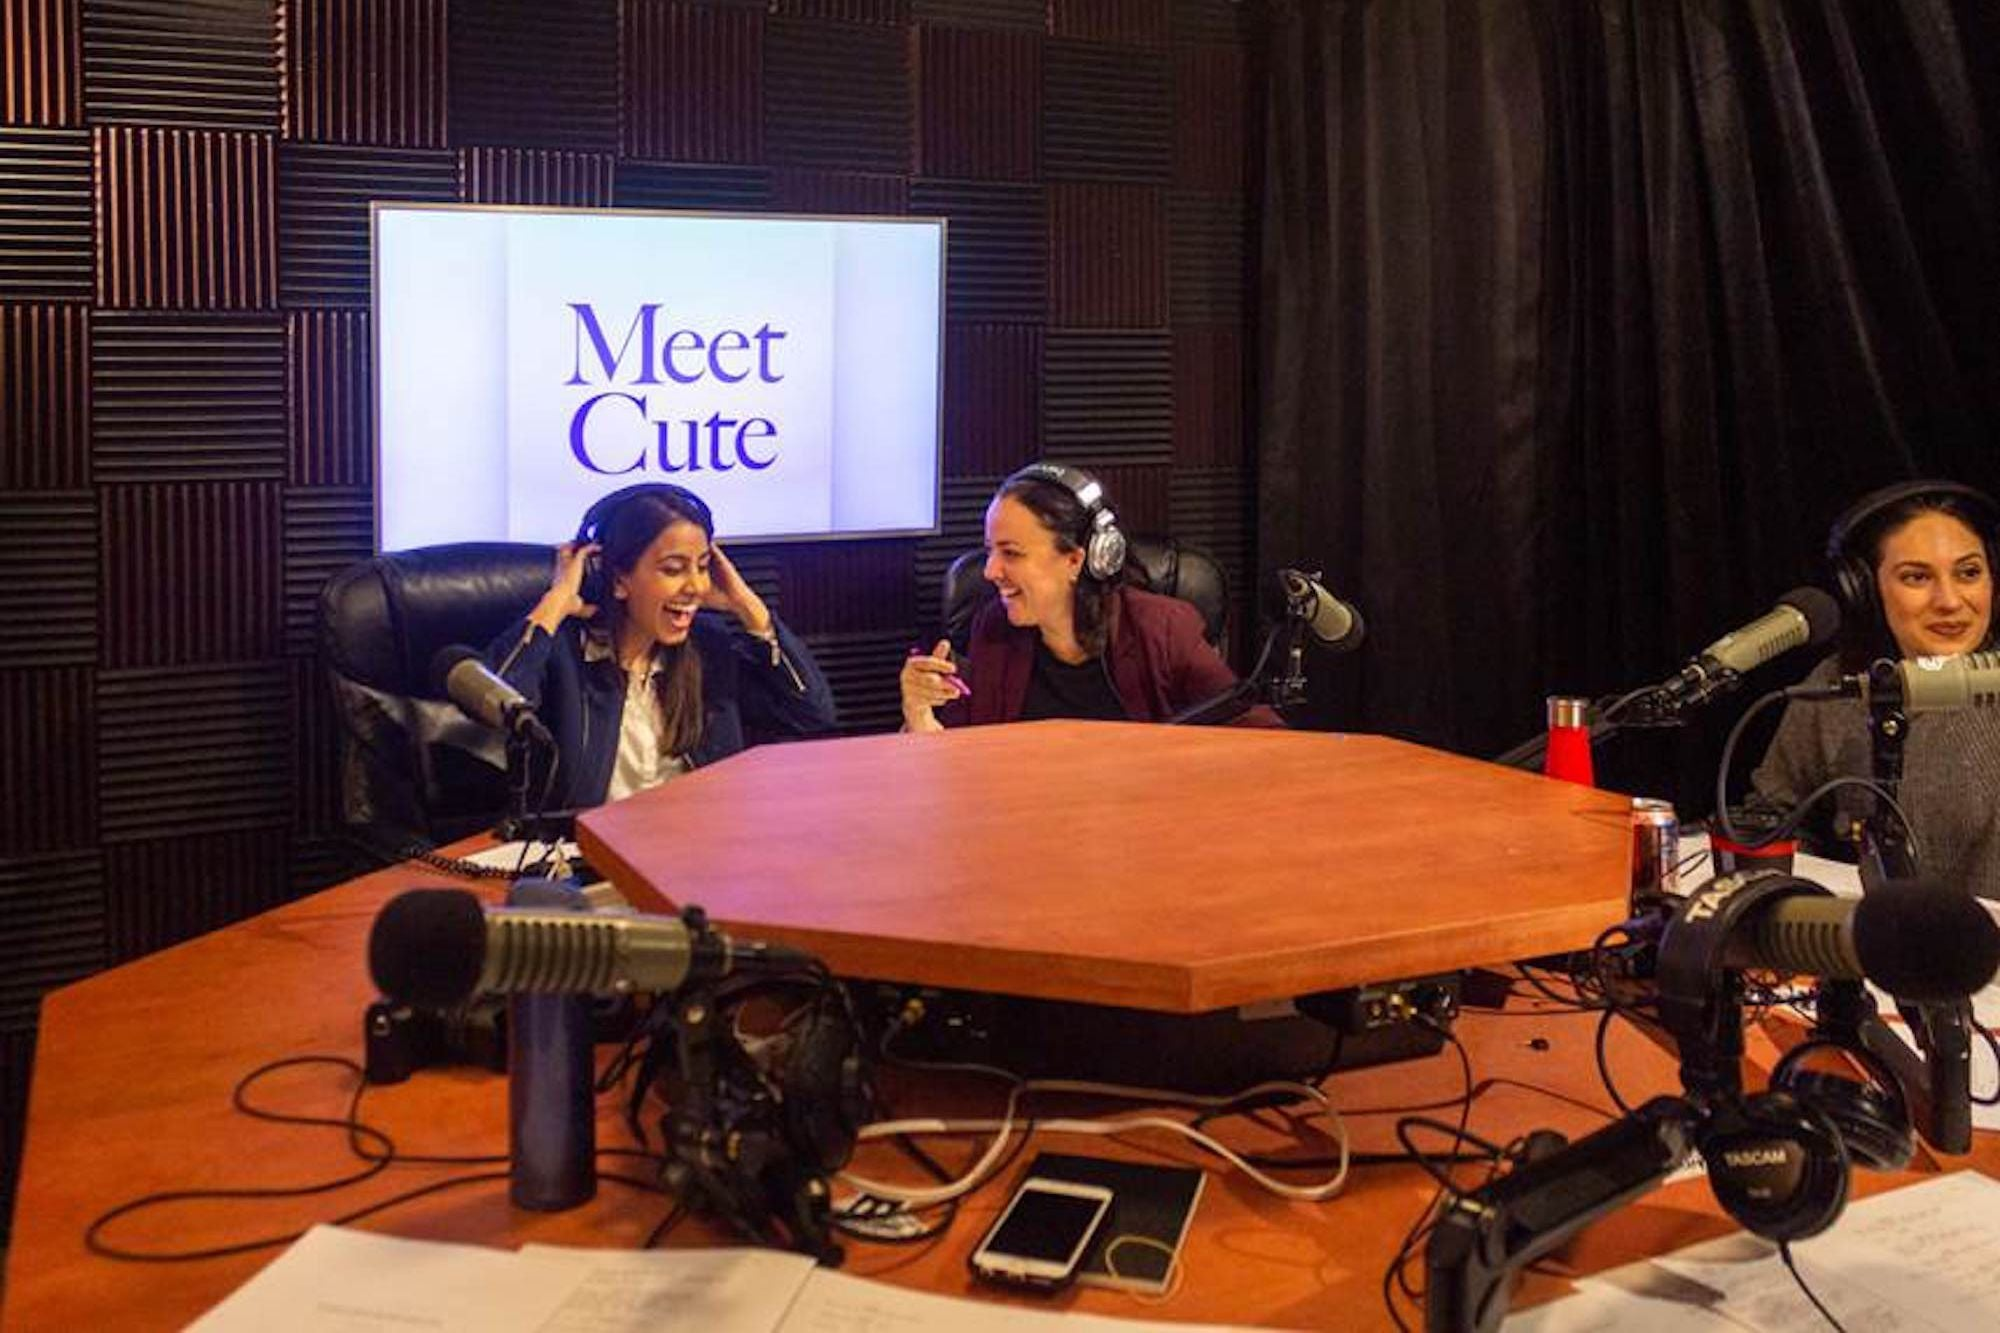 Need a Mental Break? The 'Meet Cute' Podcast Delivers Rom-Com Escape in 15-Minute Bursts